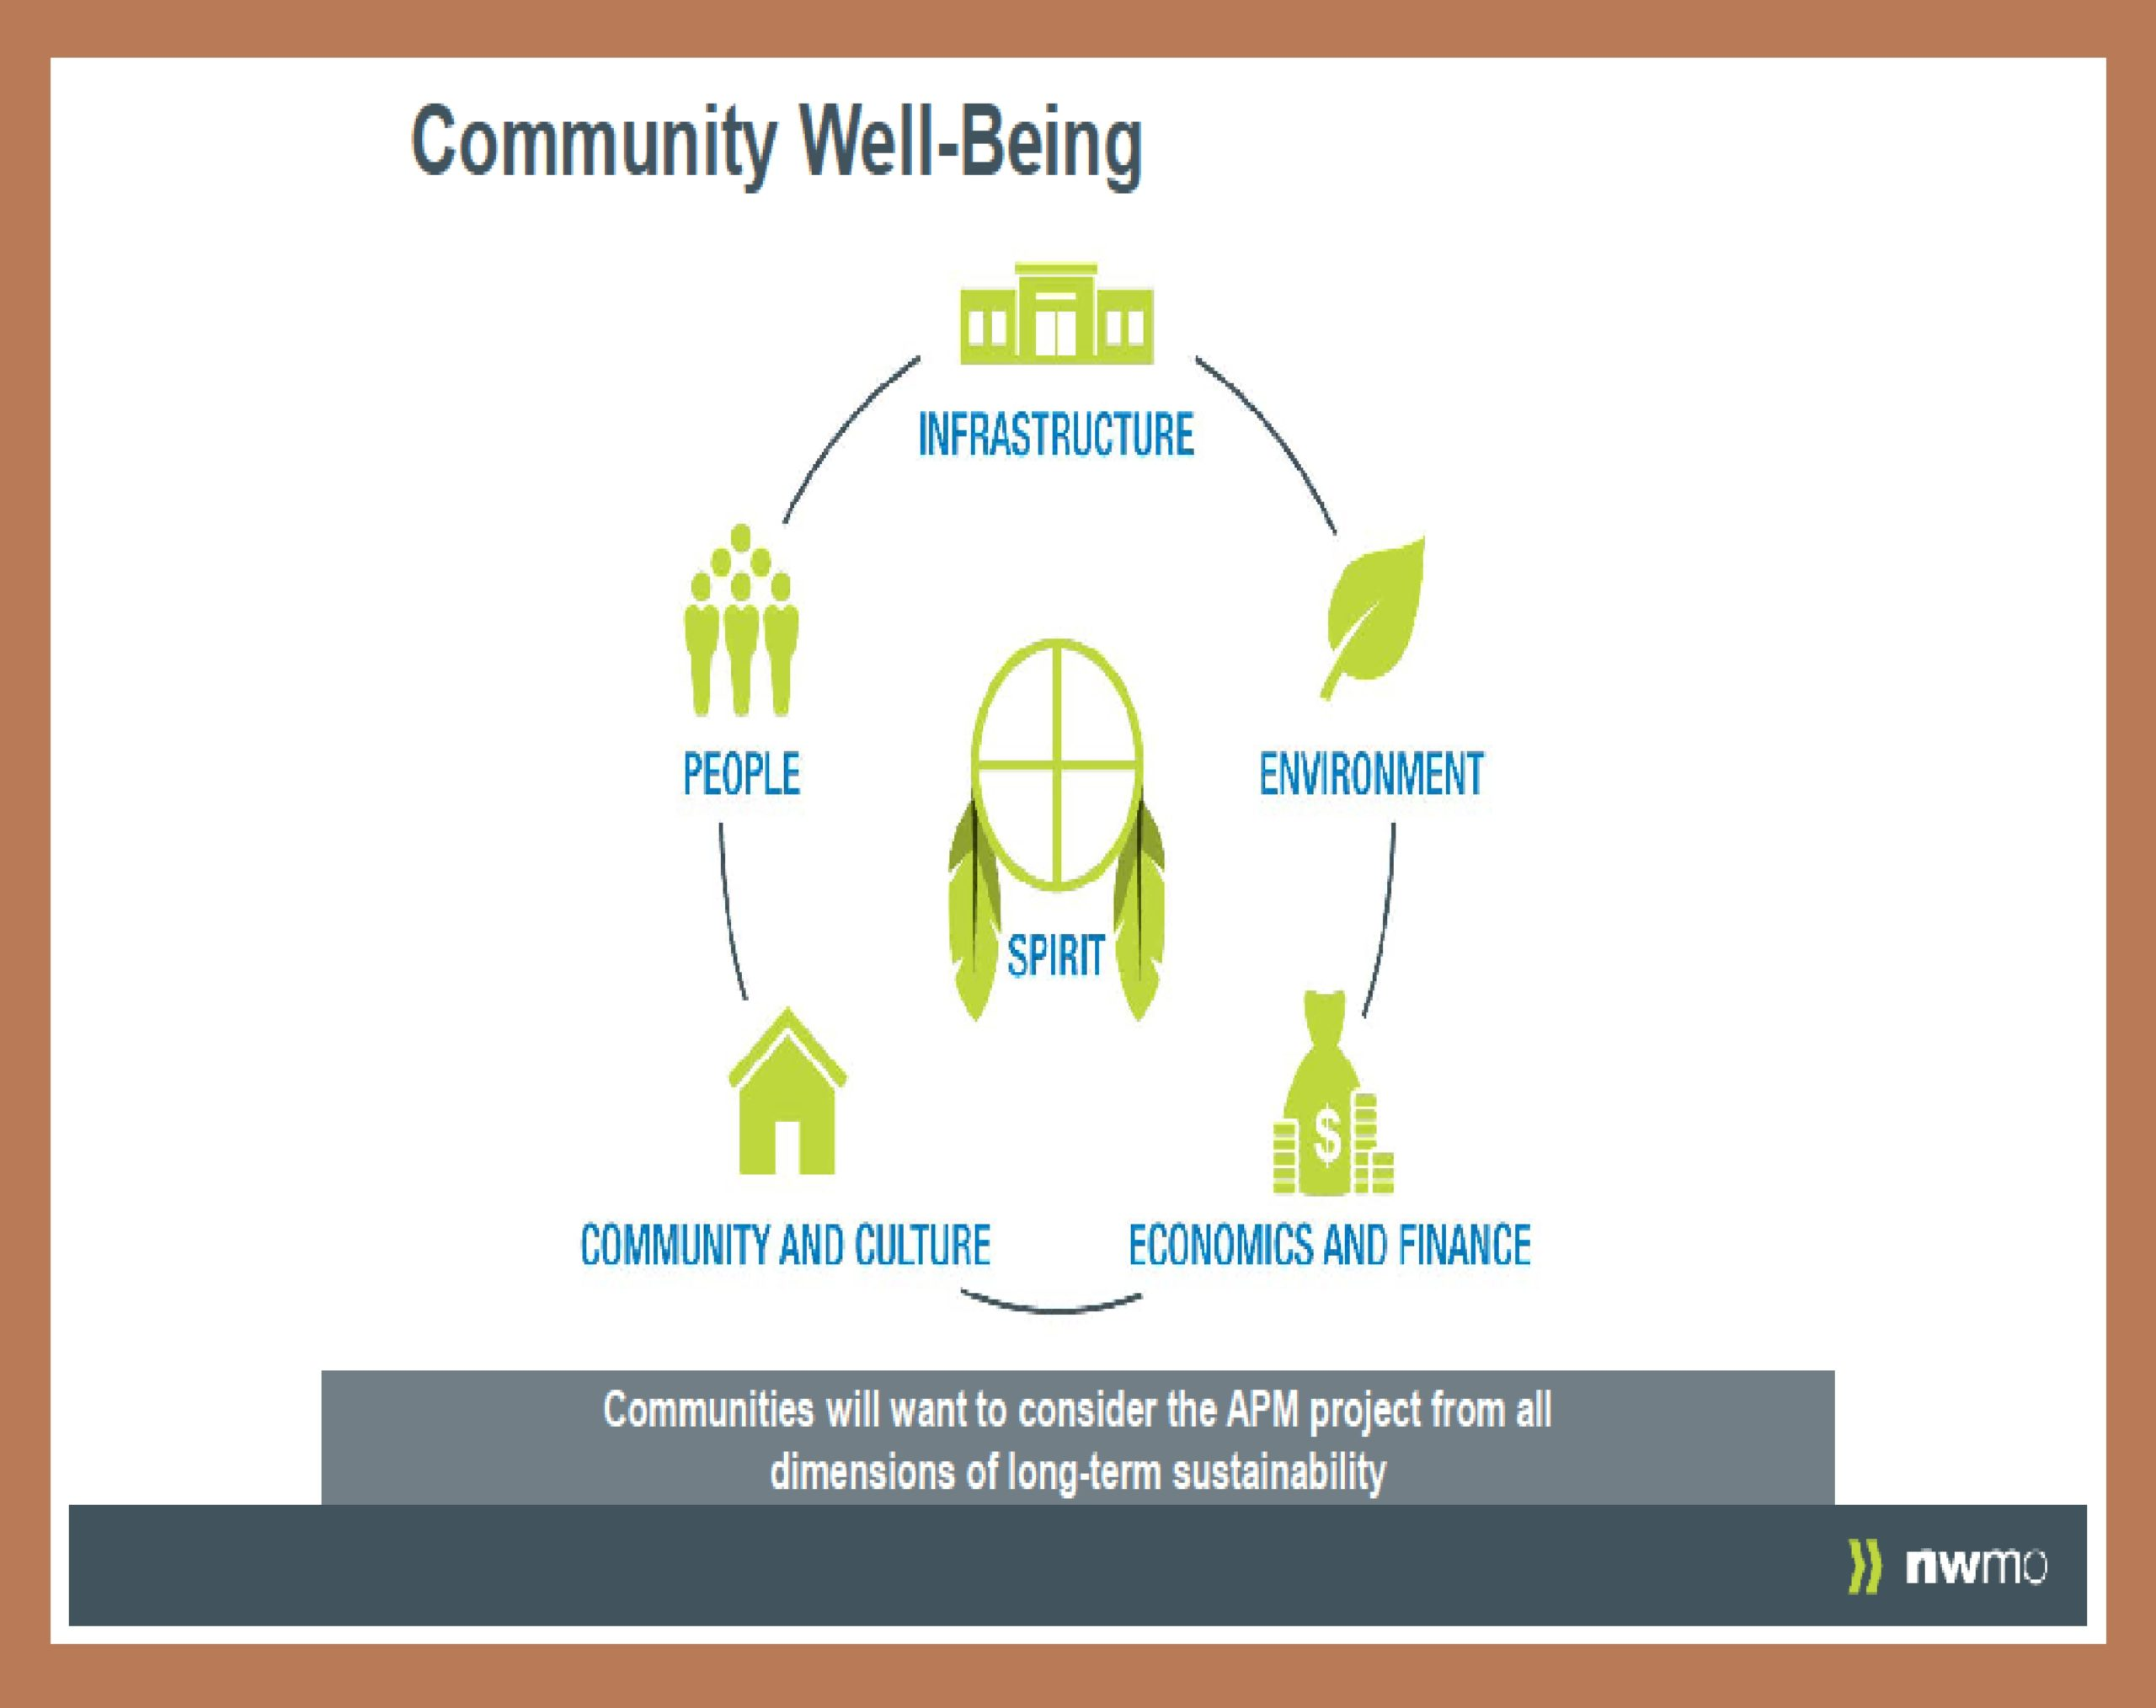 Community Well-Being #1